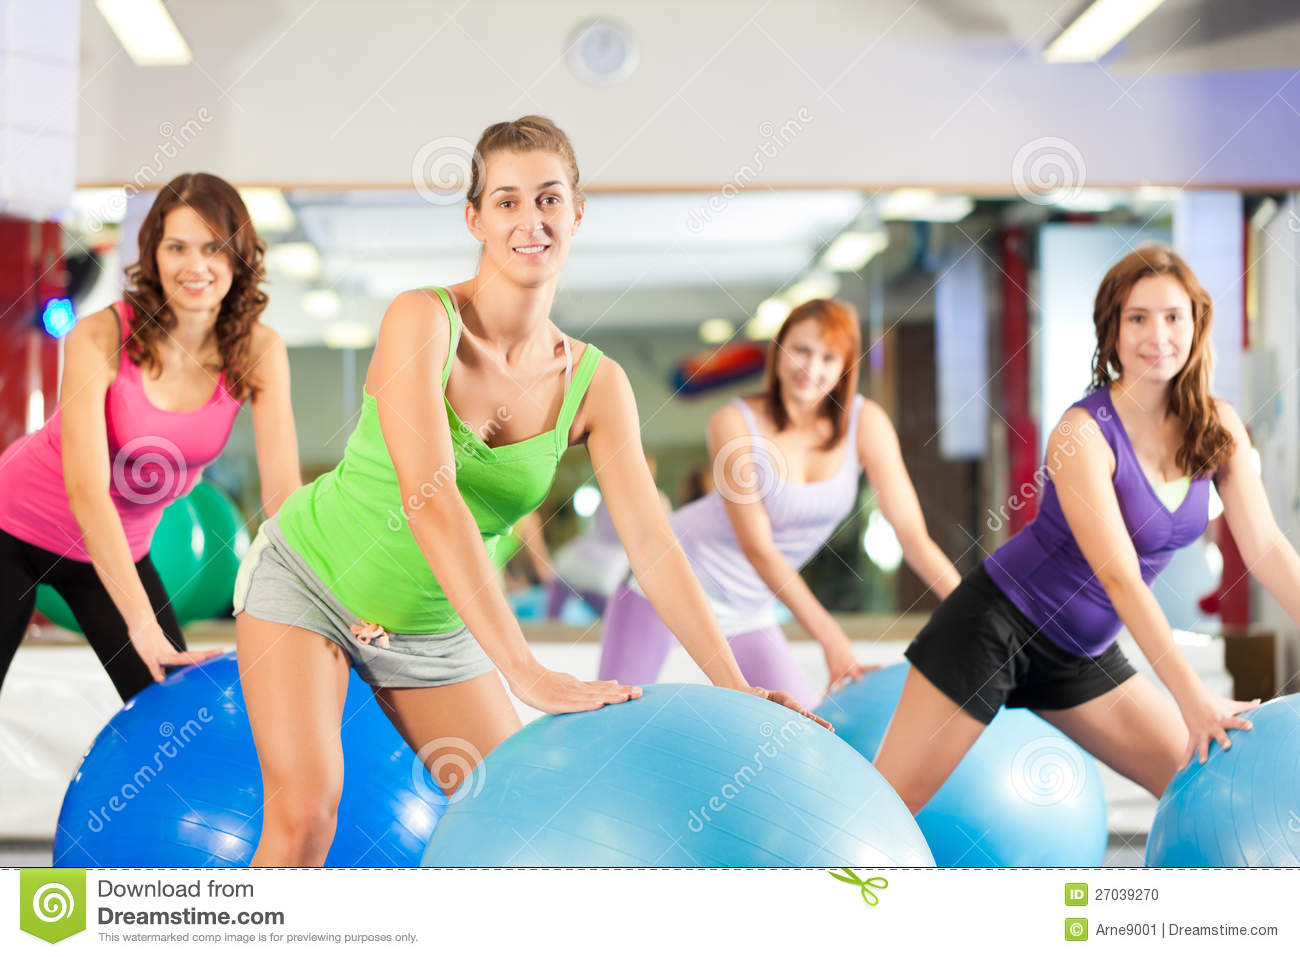 Gym fitness women training and workout stock photo for Fitness gym